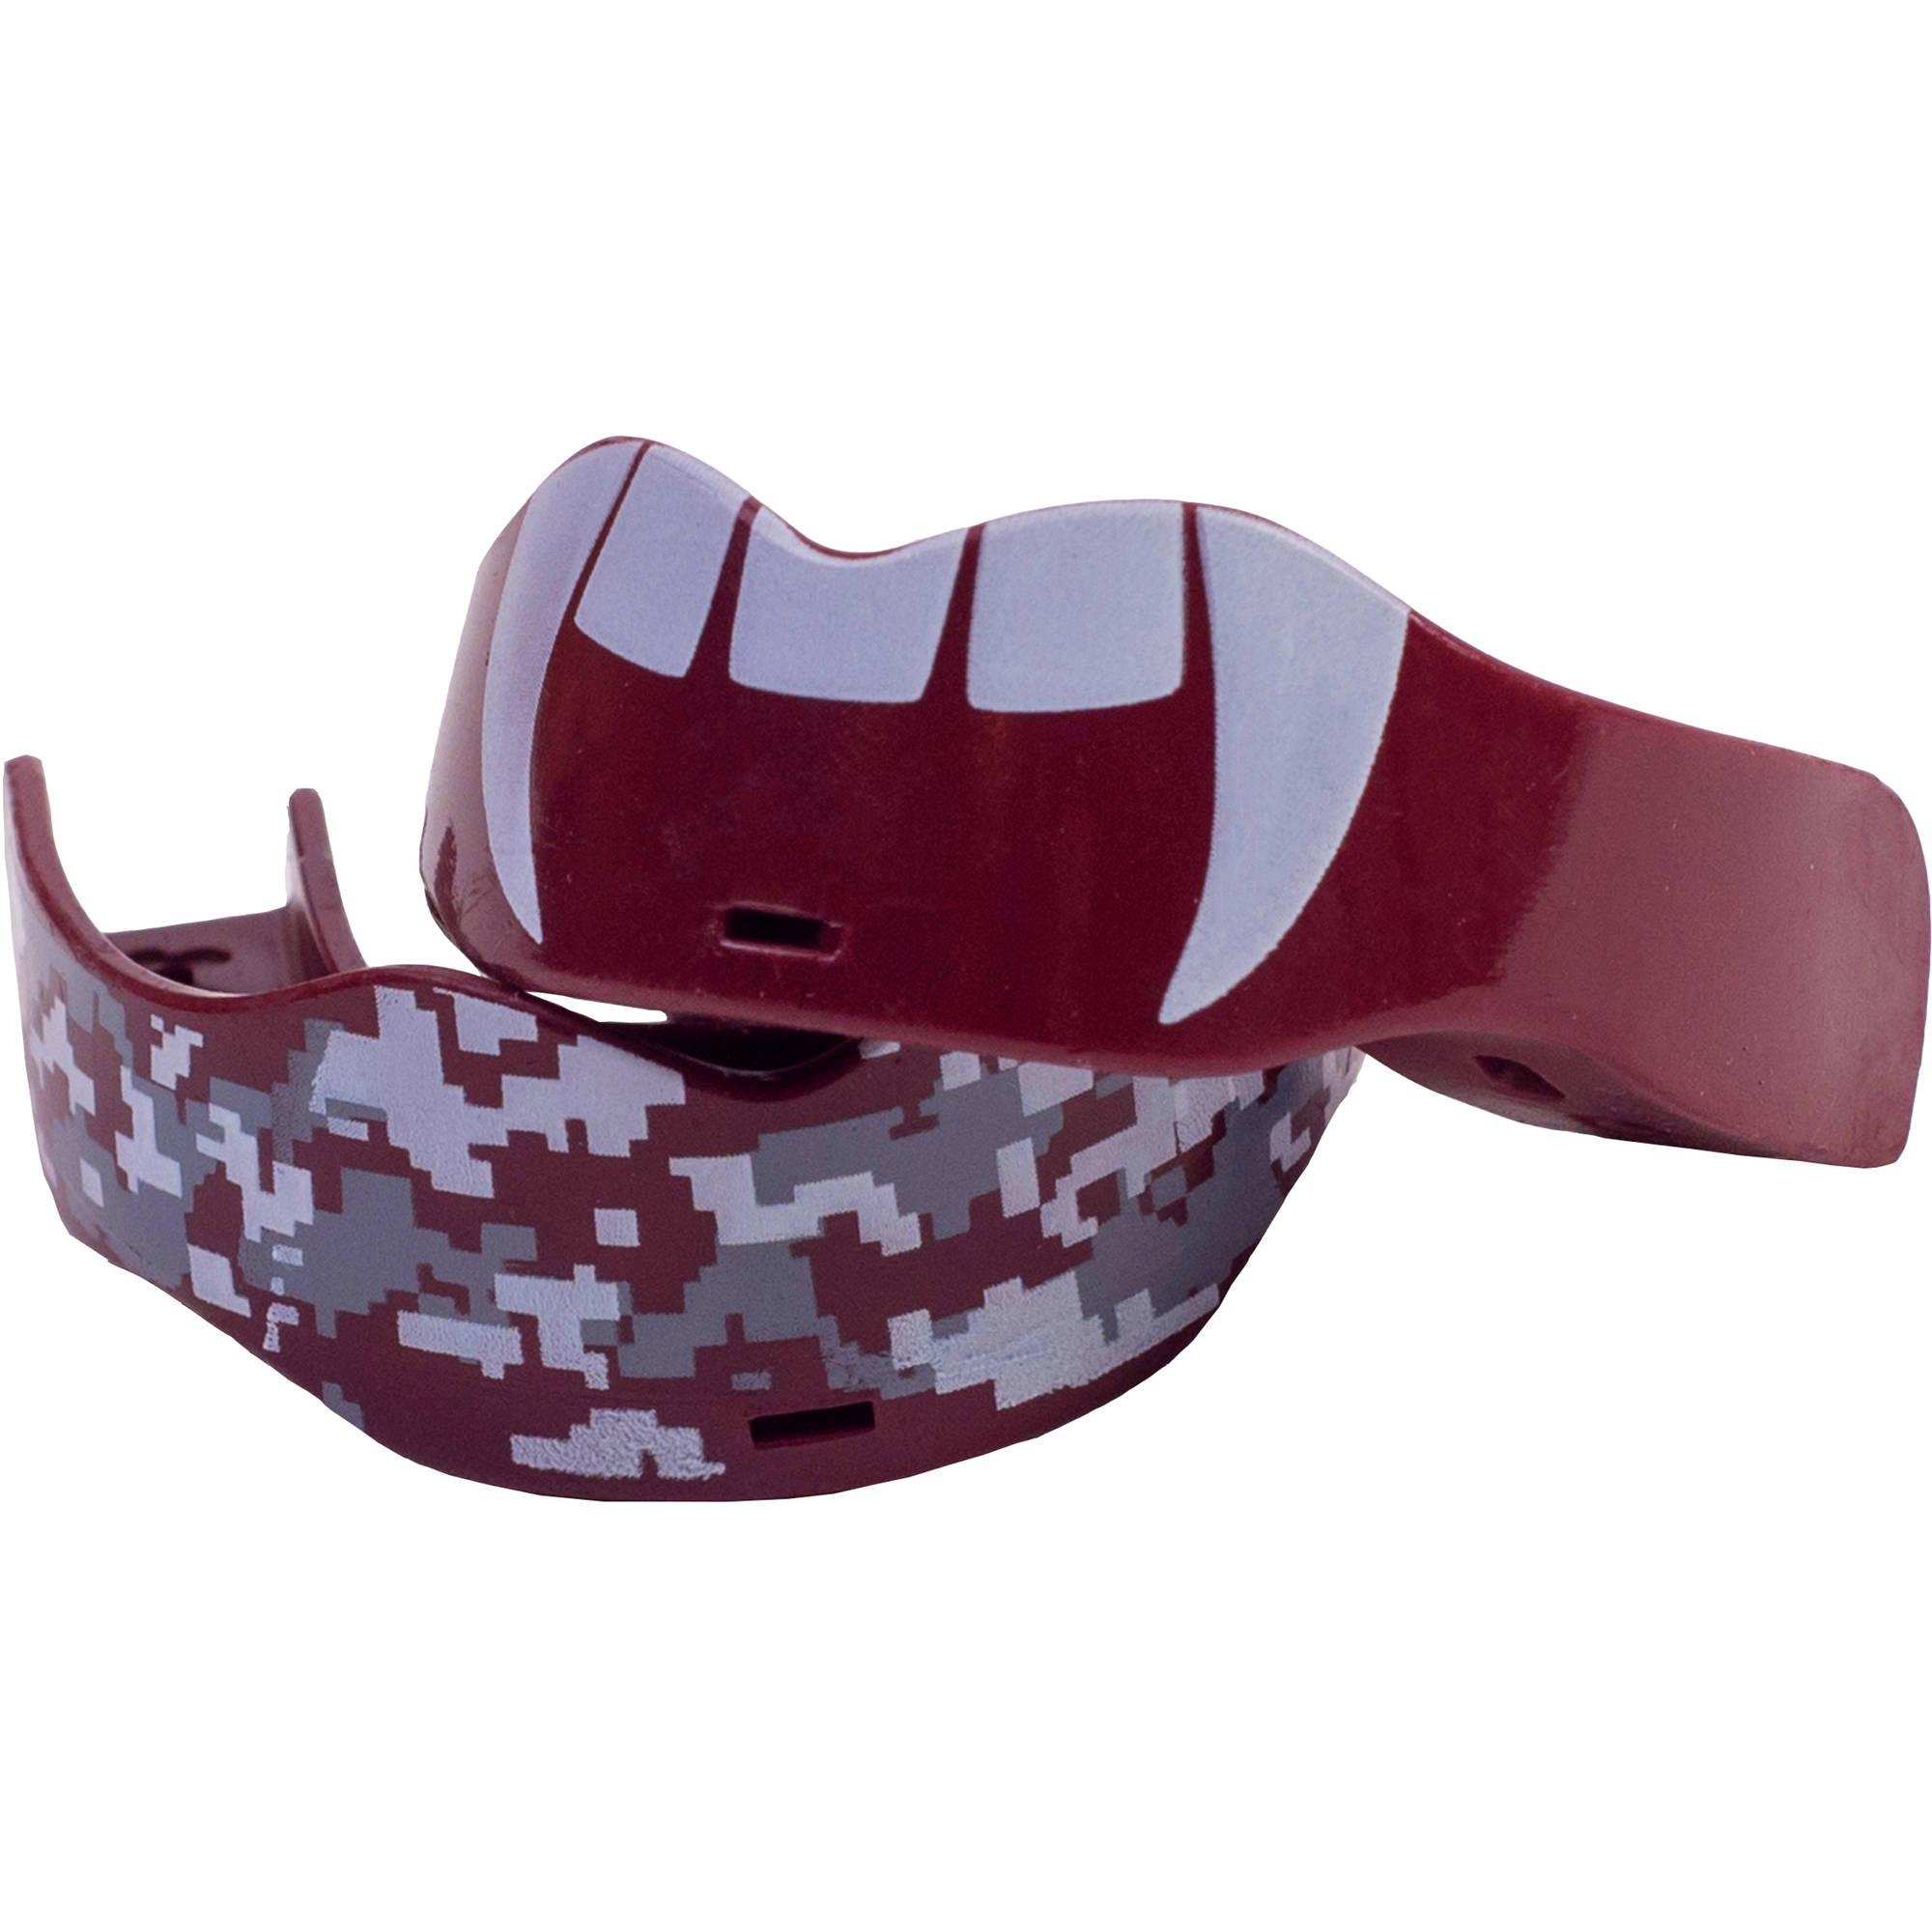 Soldier Sports Custom 7312 Mouthguard, Maroon